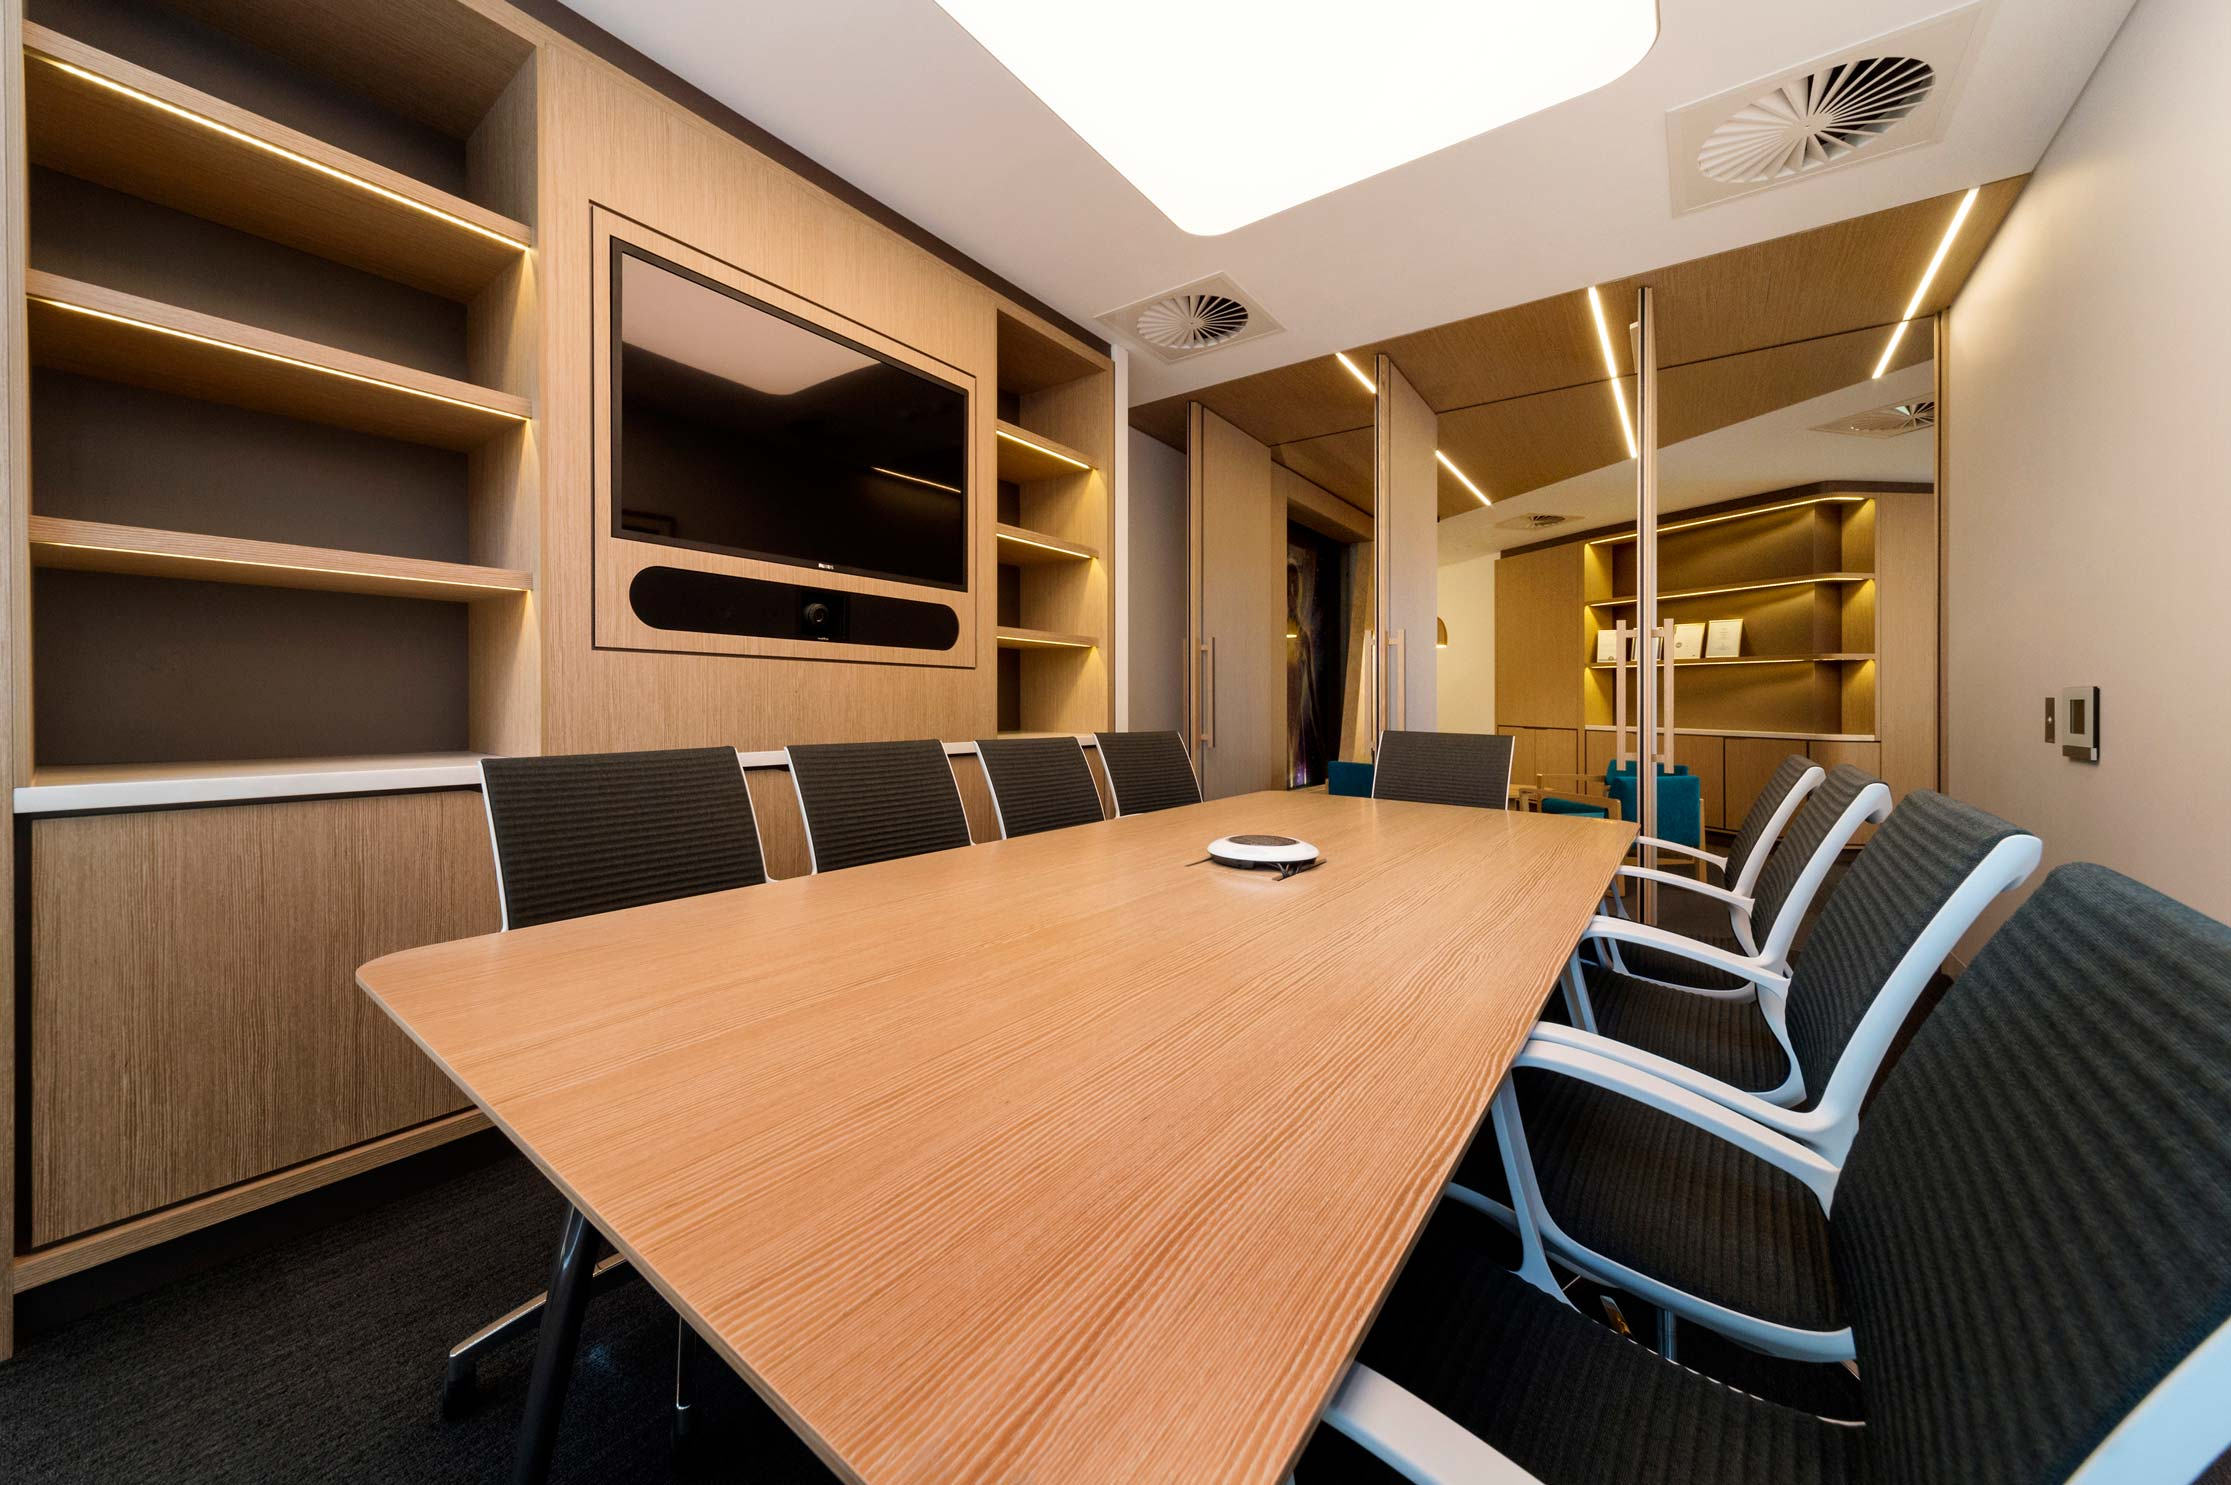 timber cladded office boardroom with pivoting doors